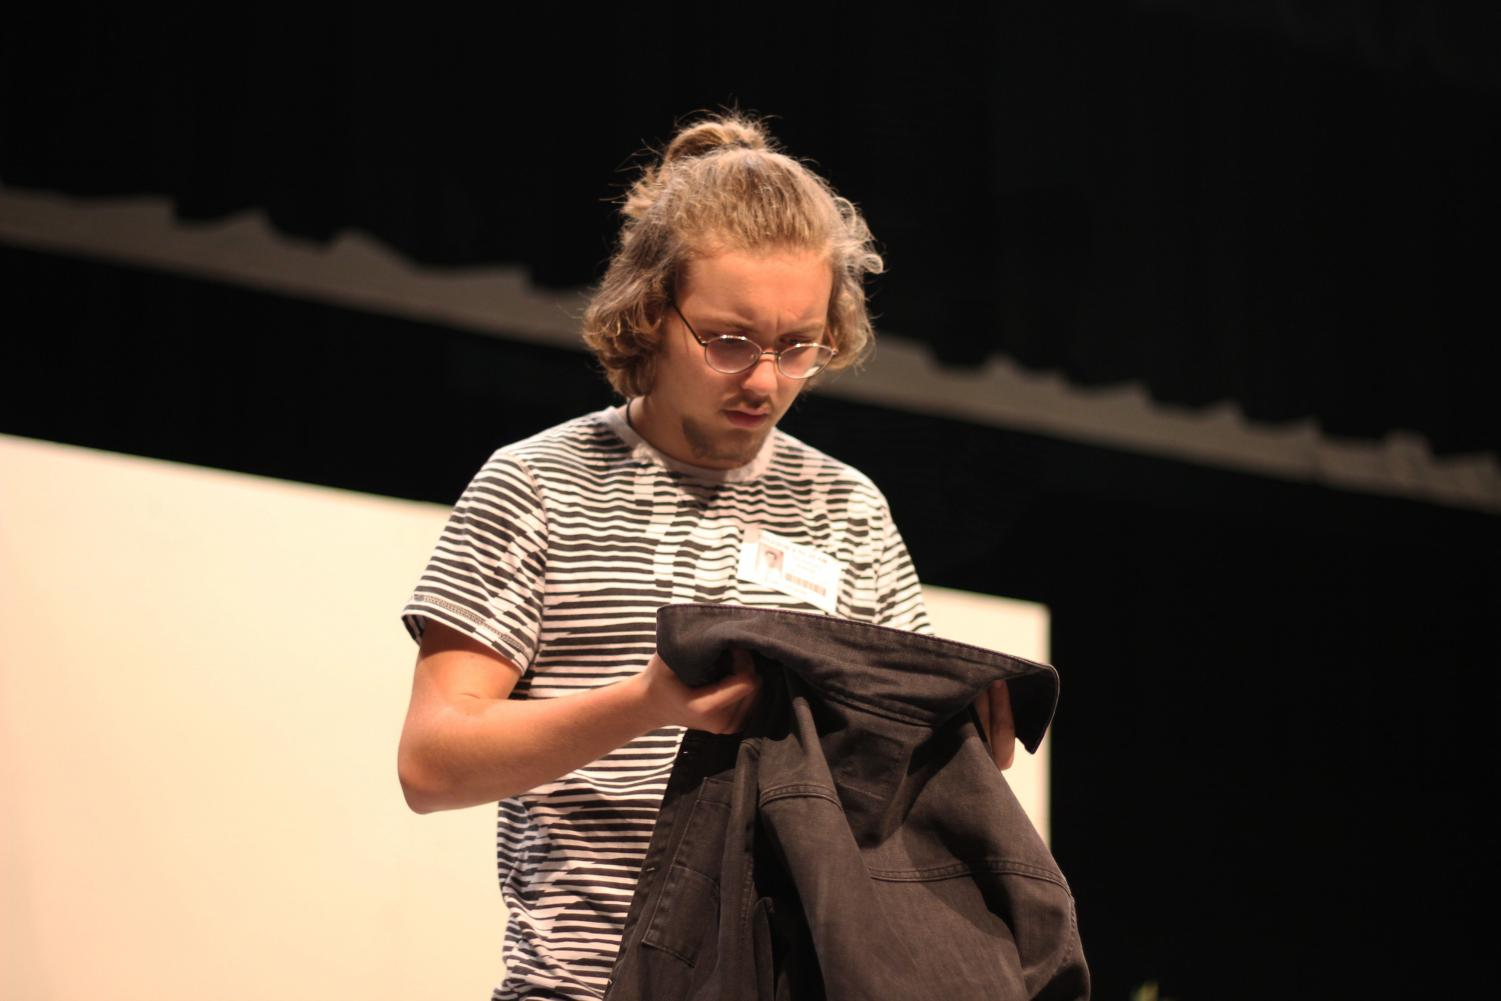 """Junior Evan Janacek, who plays the lead role of """"Seymour"""" in the musical """"Little Shop of Horrors,"""" practices a scene during after school rehearsal. The cast has rehearsals nearly everyday leading up to the opening night on Nov. 14."""